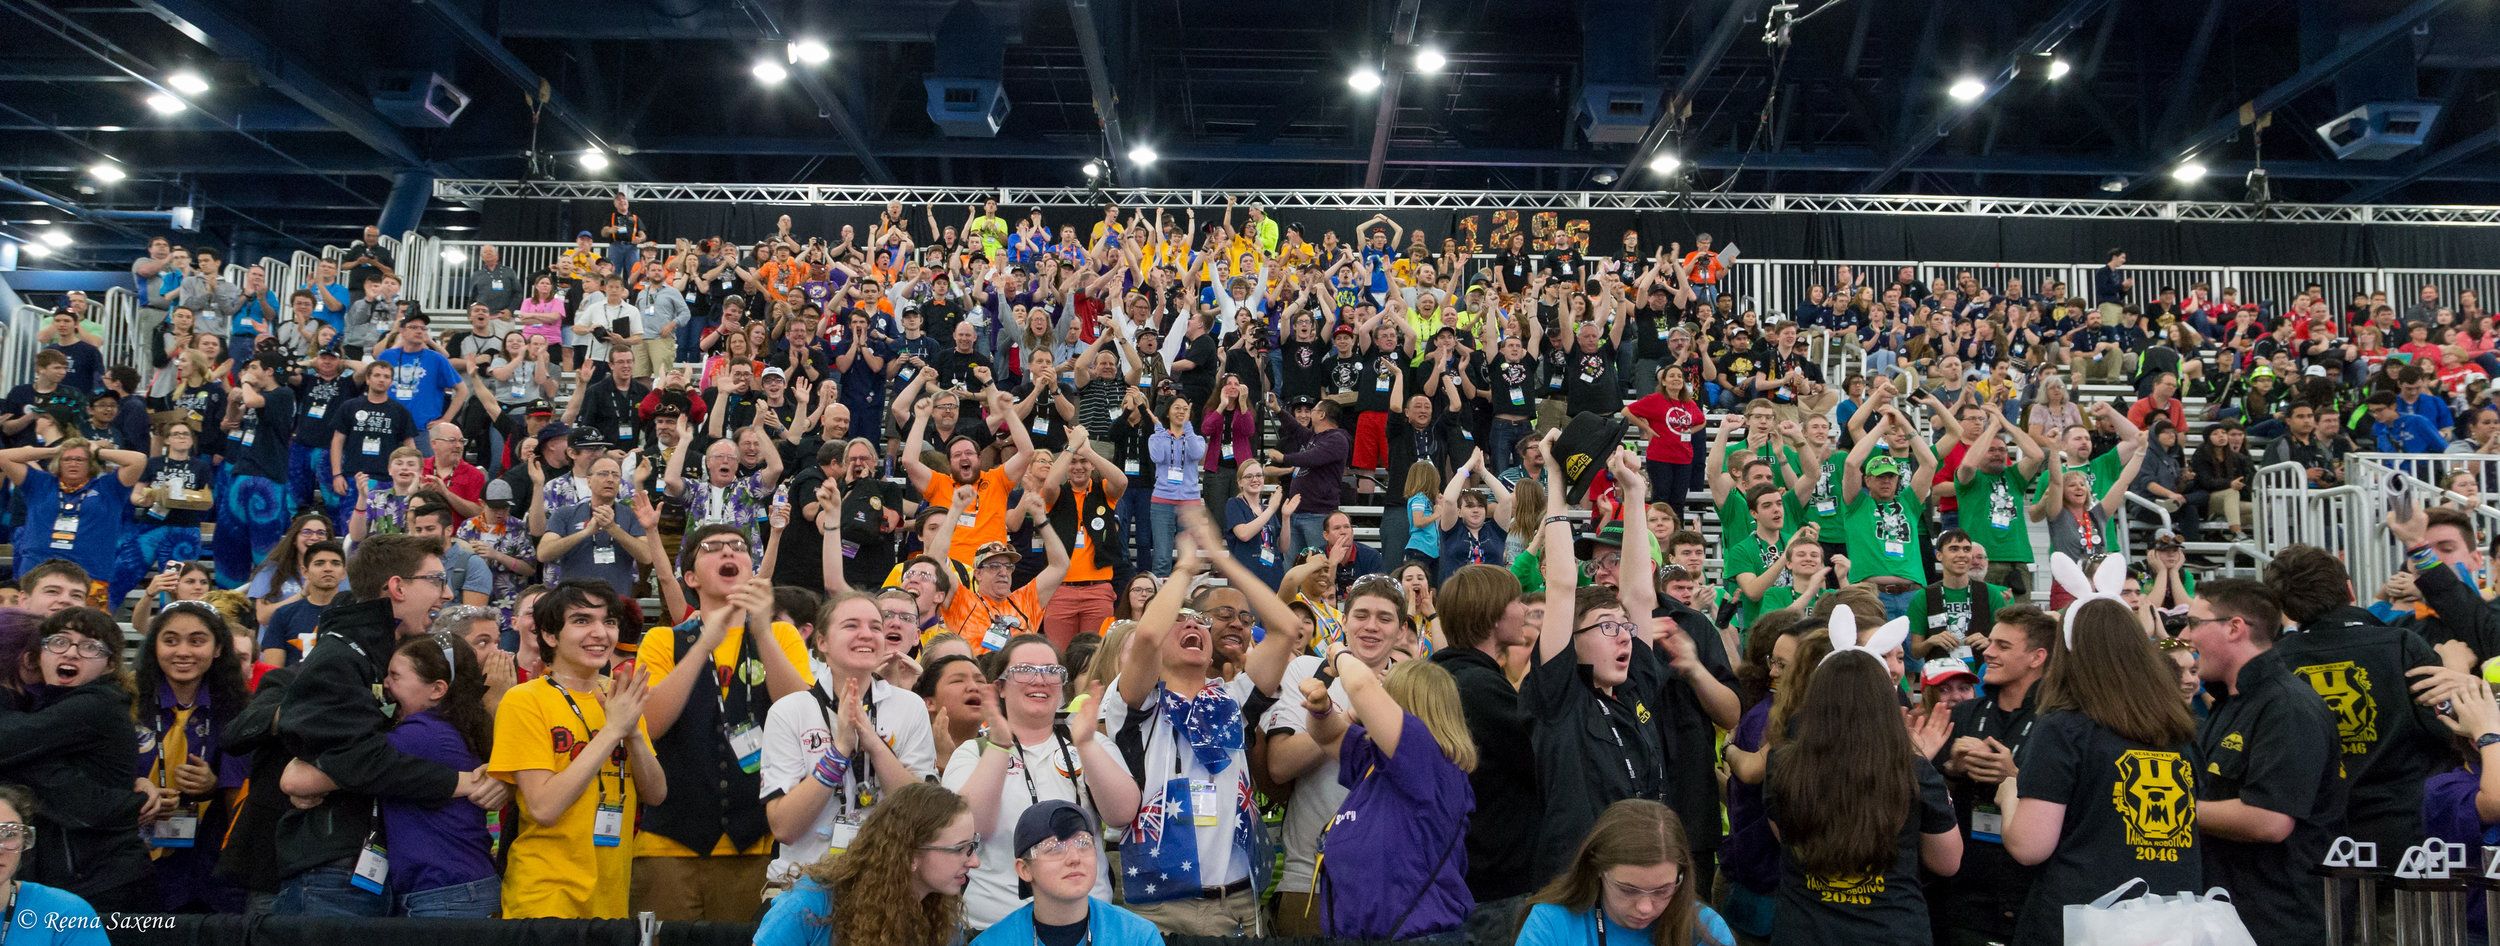 "The audience at FIRST World Championship 2017, the moment that the IRS's alliance qualified for ""Einstein's"" (Finals)."